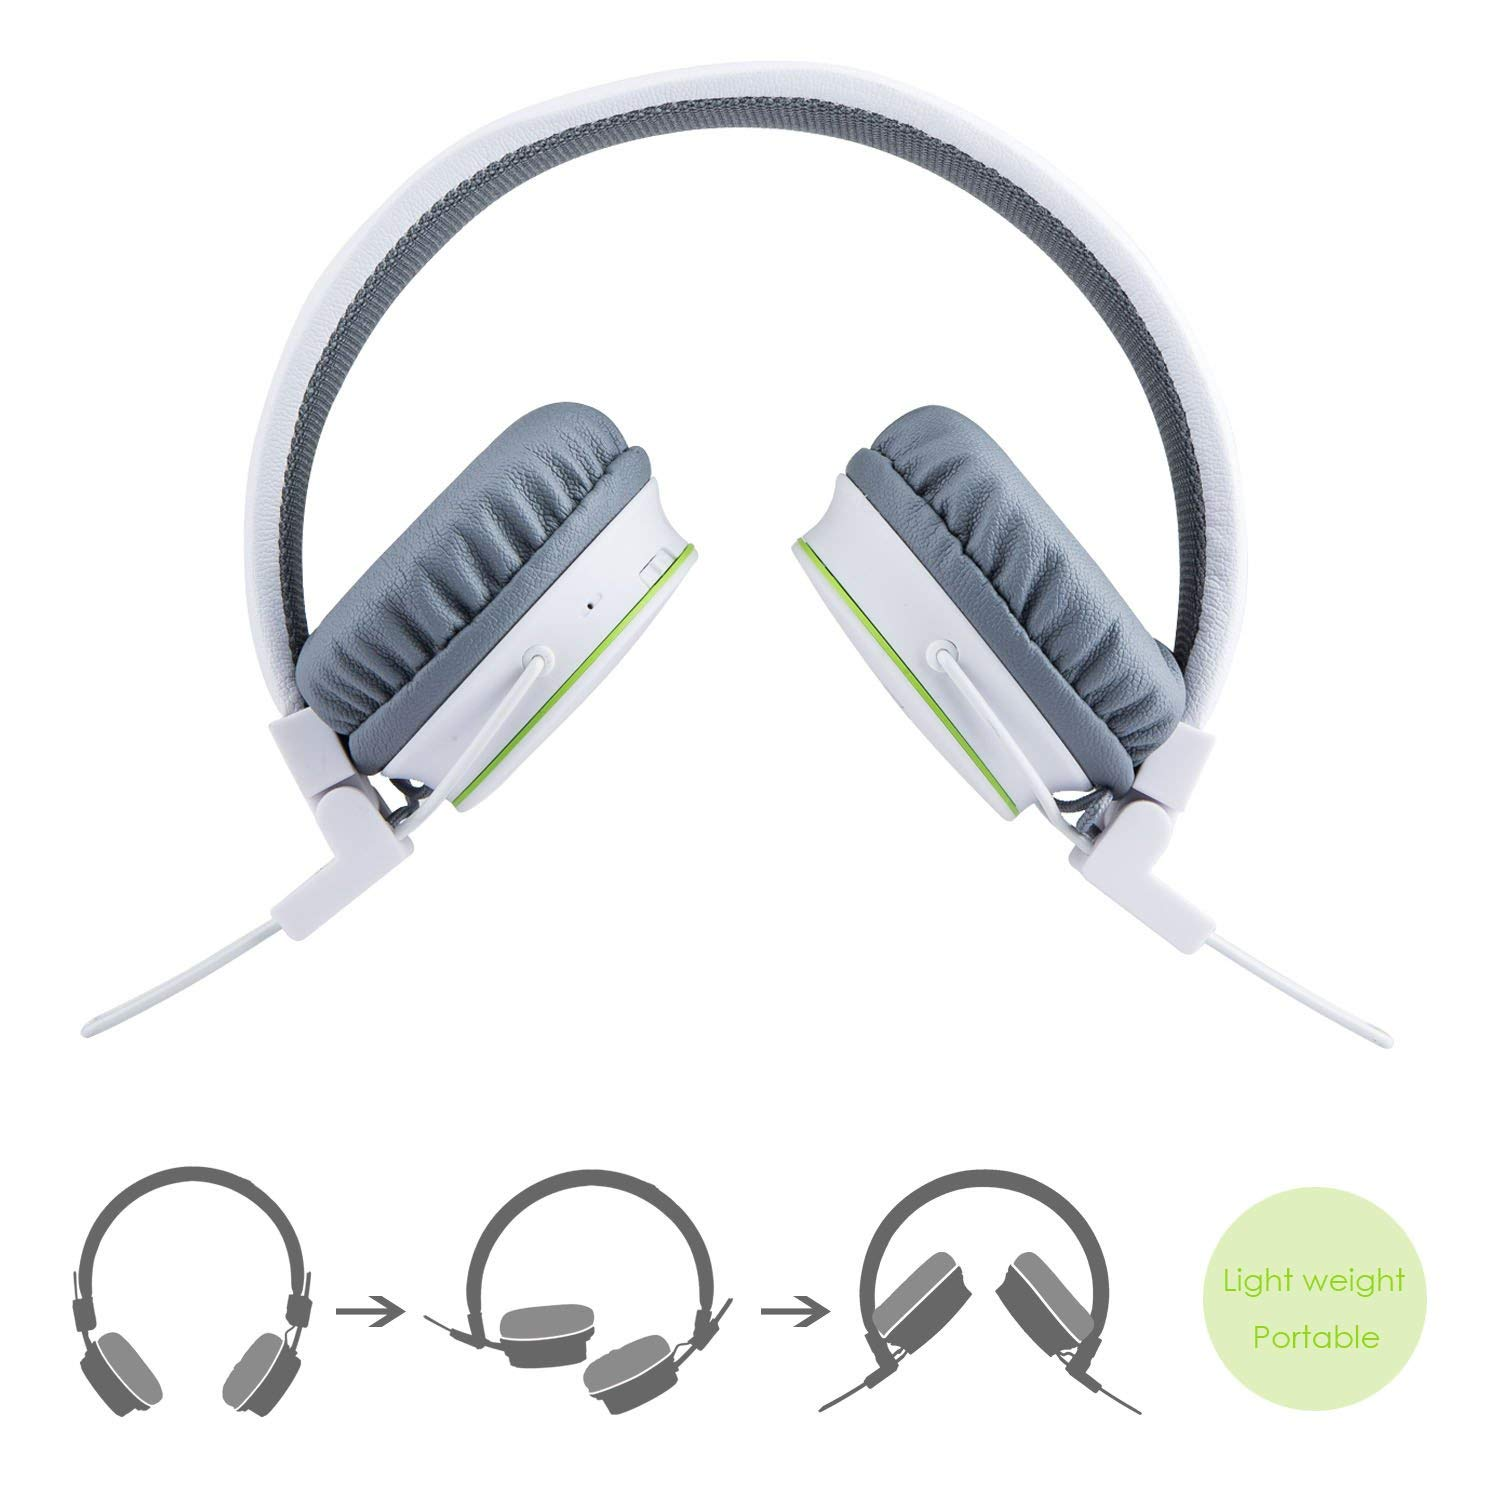 Volume Limited Wireless Bluetooth Kids Headphones Termichy Wireless Wired Foldable Stereo Over Ear Headsets With Music Share Port And Built In Microphone For Calling Children Bluetooth Earphones For Smartphones Pc Music Gaming White